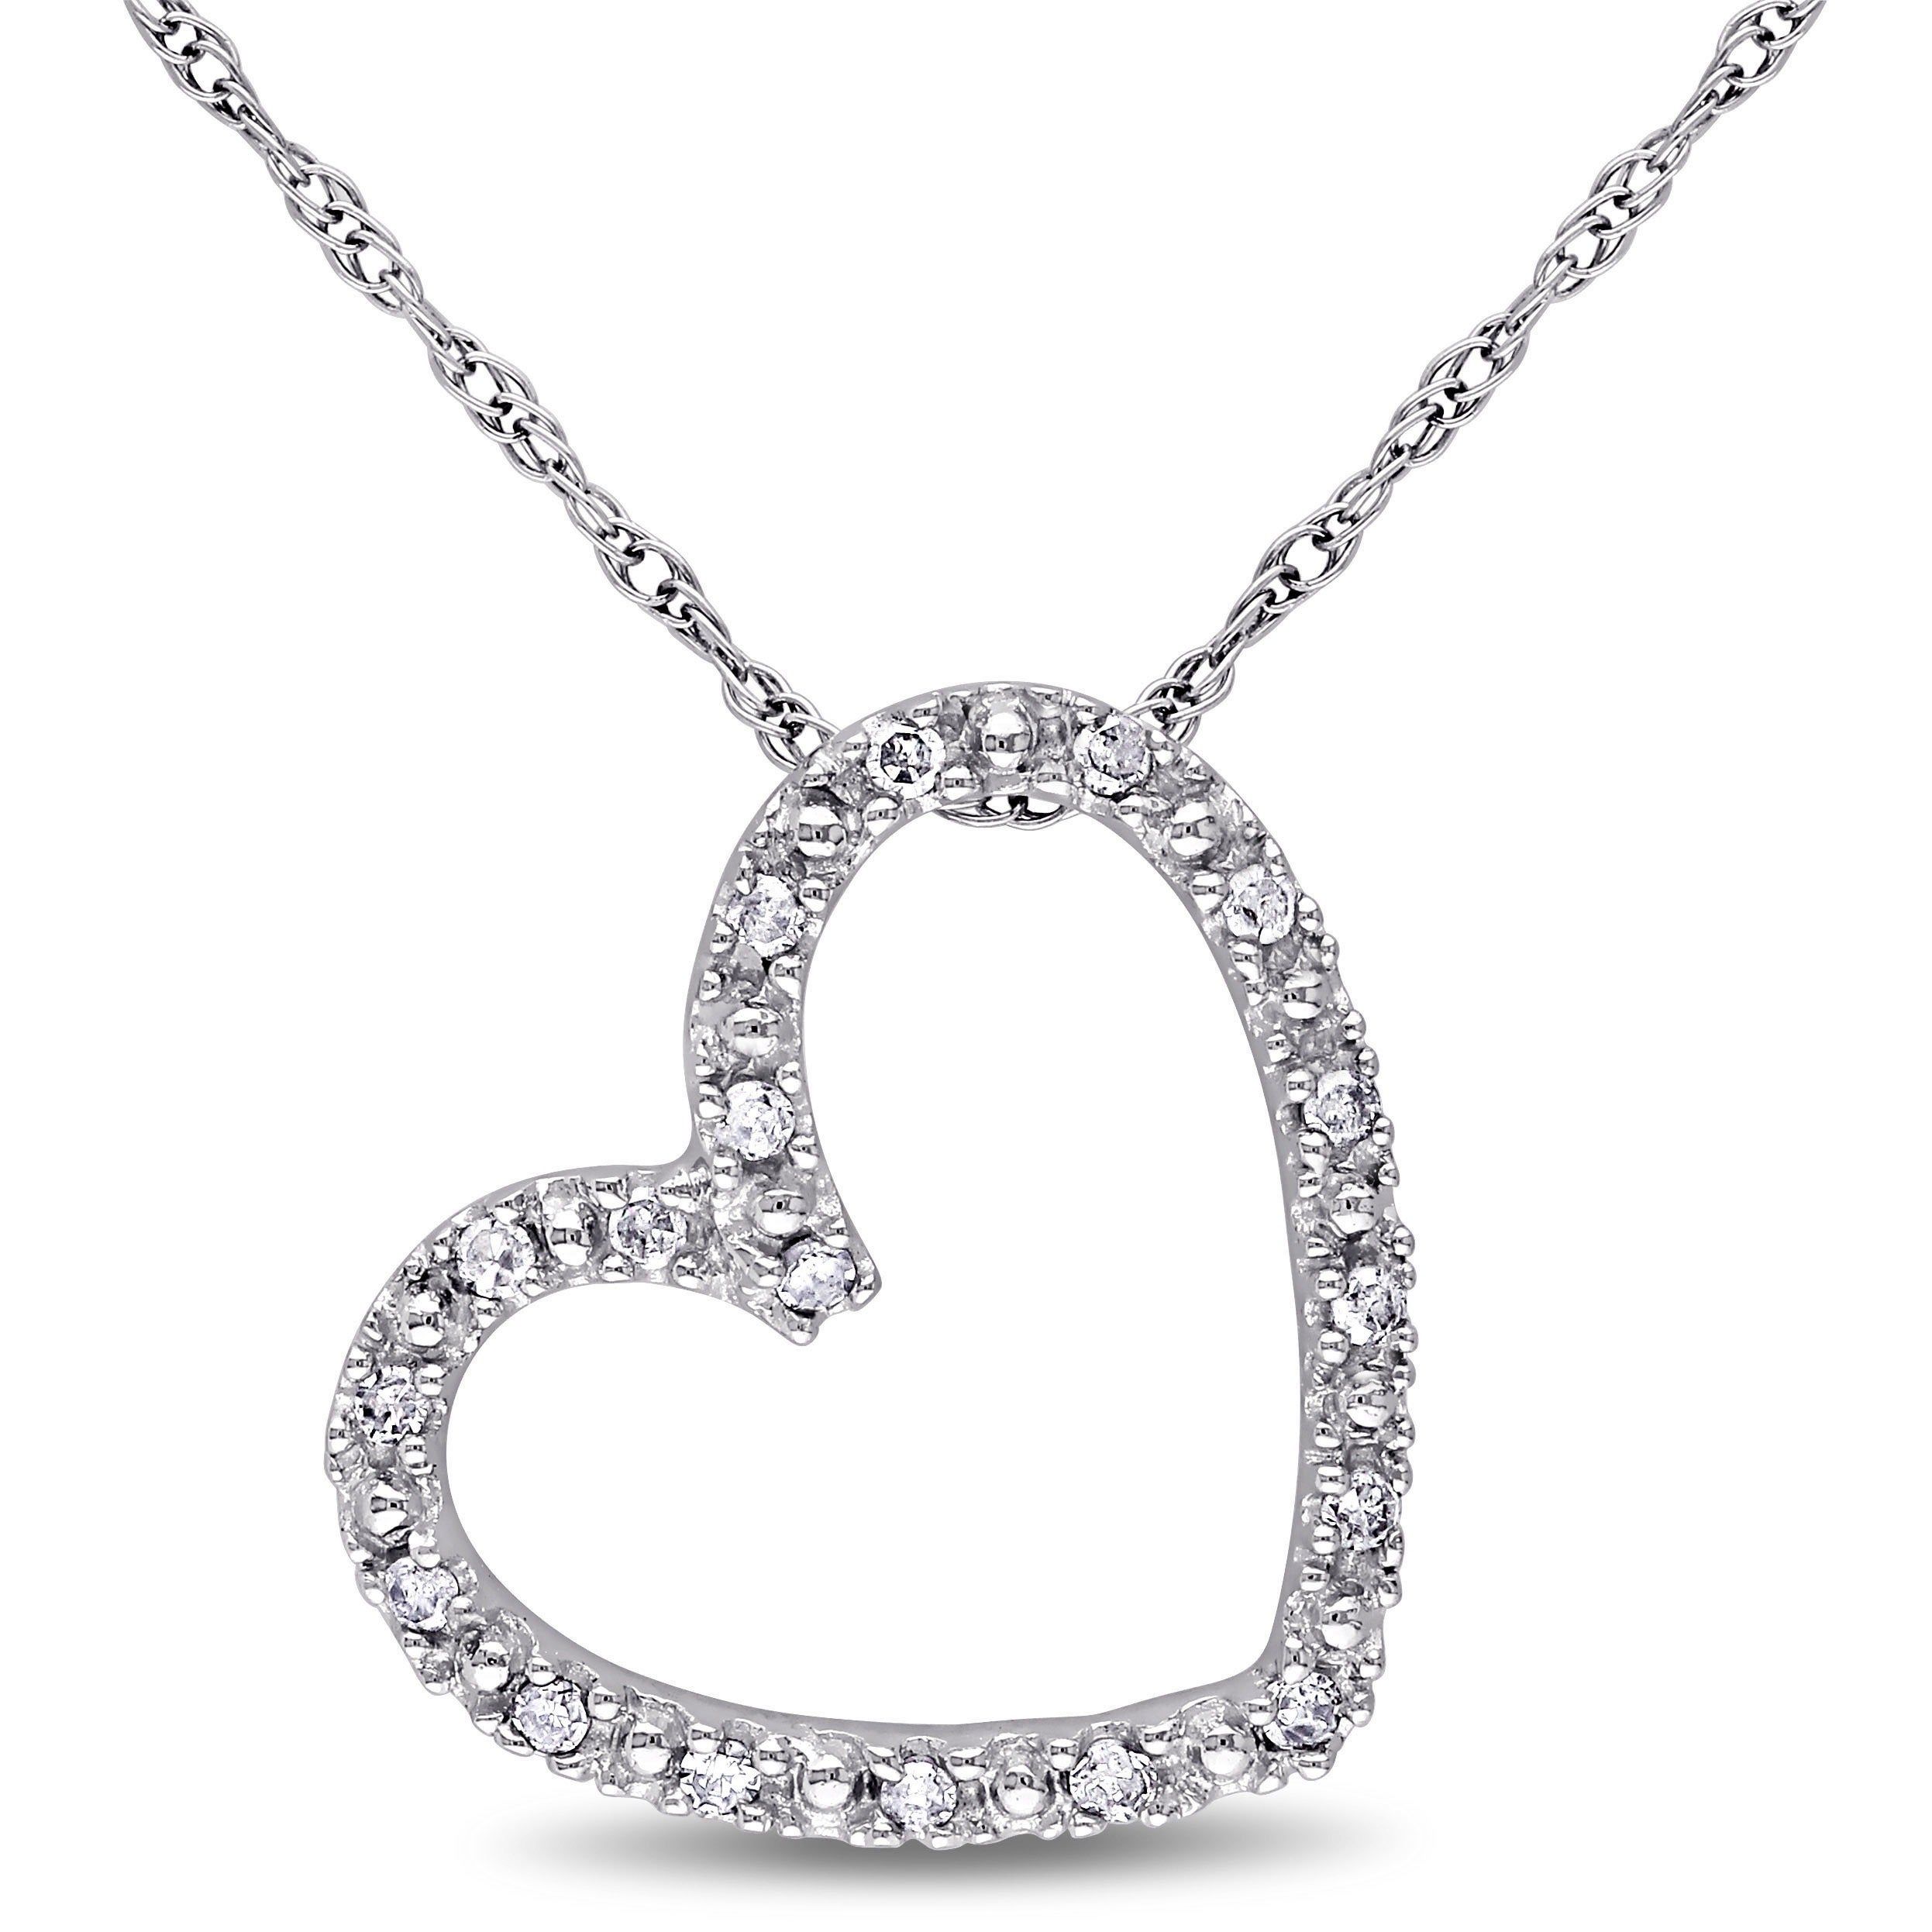 davies bezel pendant chain edwards on necklace white a in solitaire set rolo gold product diamond